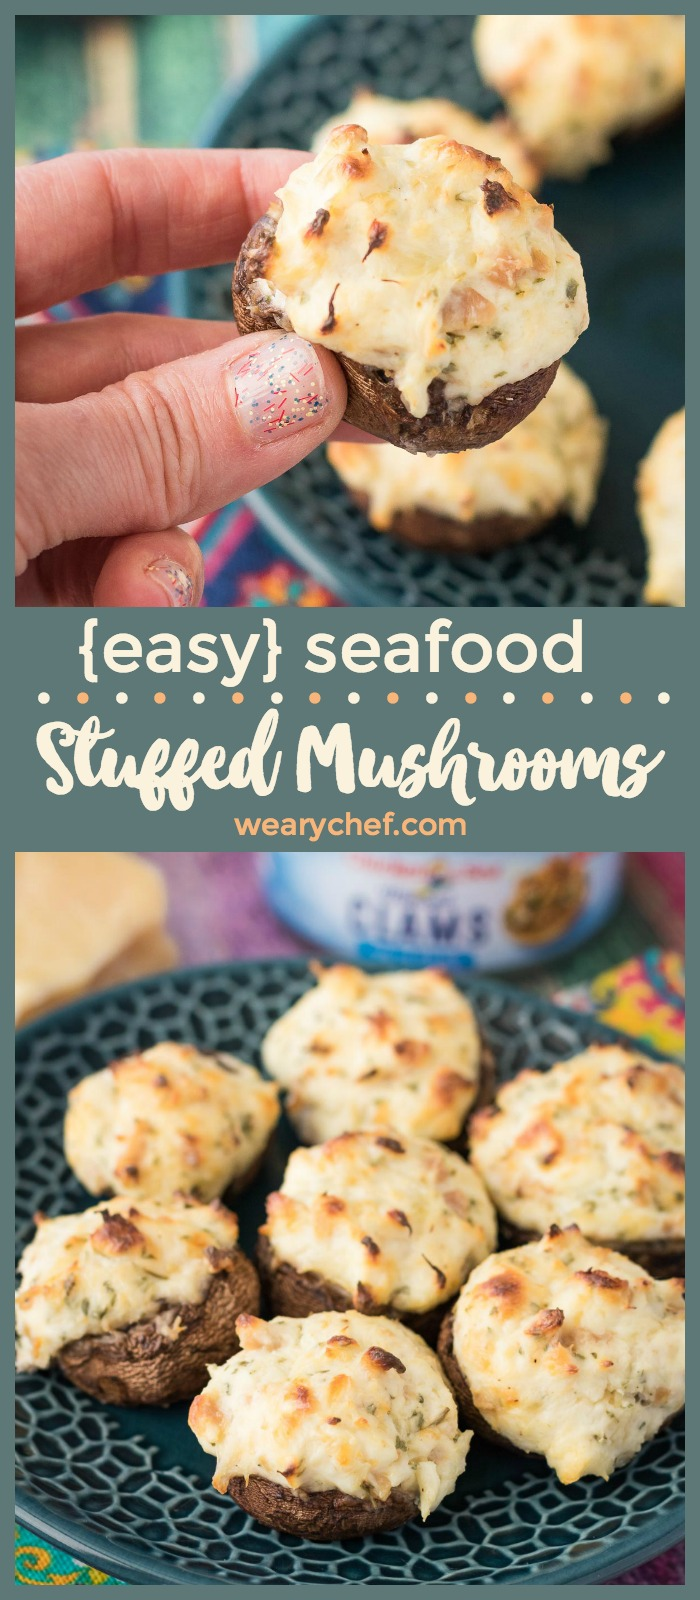 seafood-stuffed-mushrooms-collage